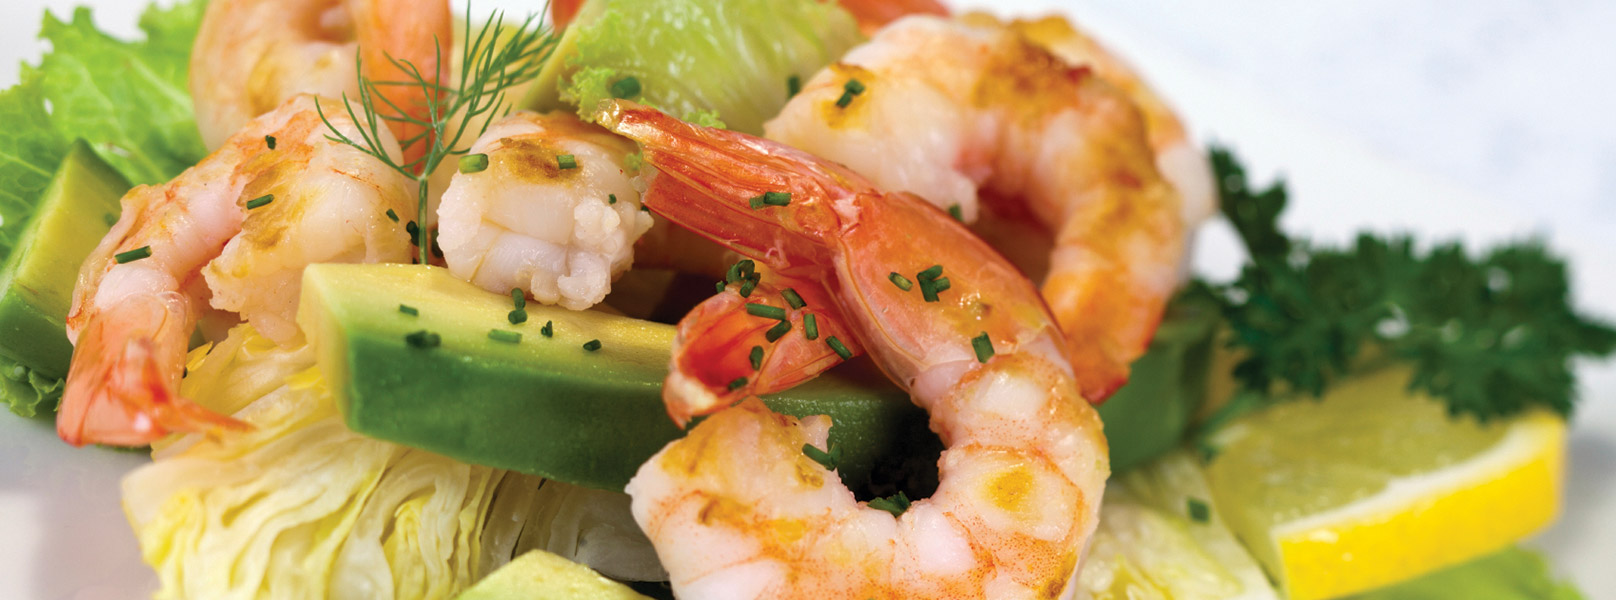 shrimp-header